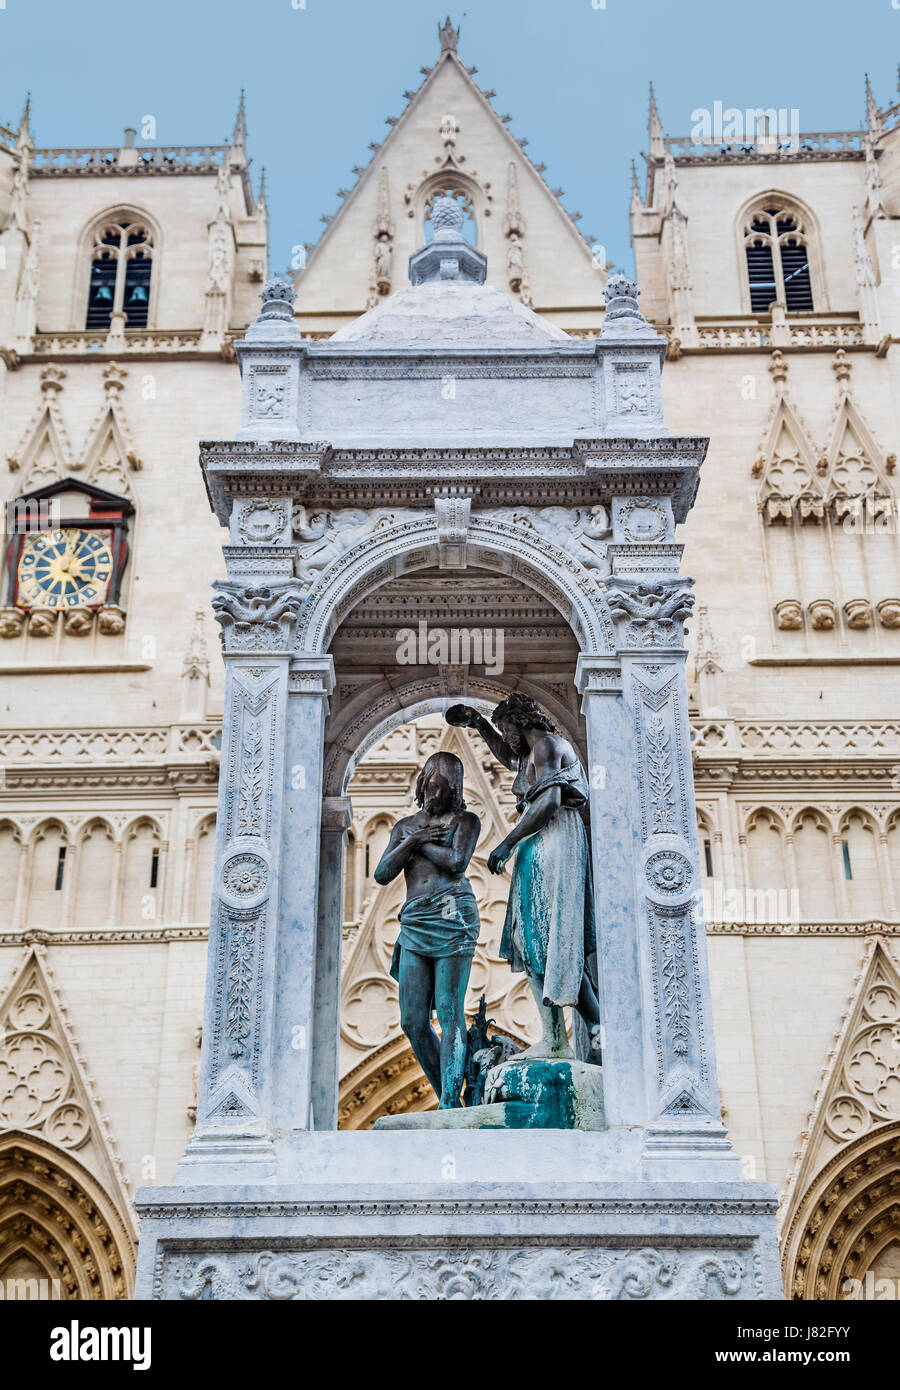 France, Lyon, The Baptism of Christ, an arcaded set of statues on a fountain at the front elevation of St. John - Stock Image